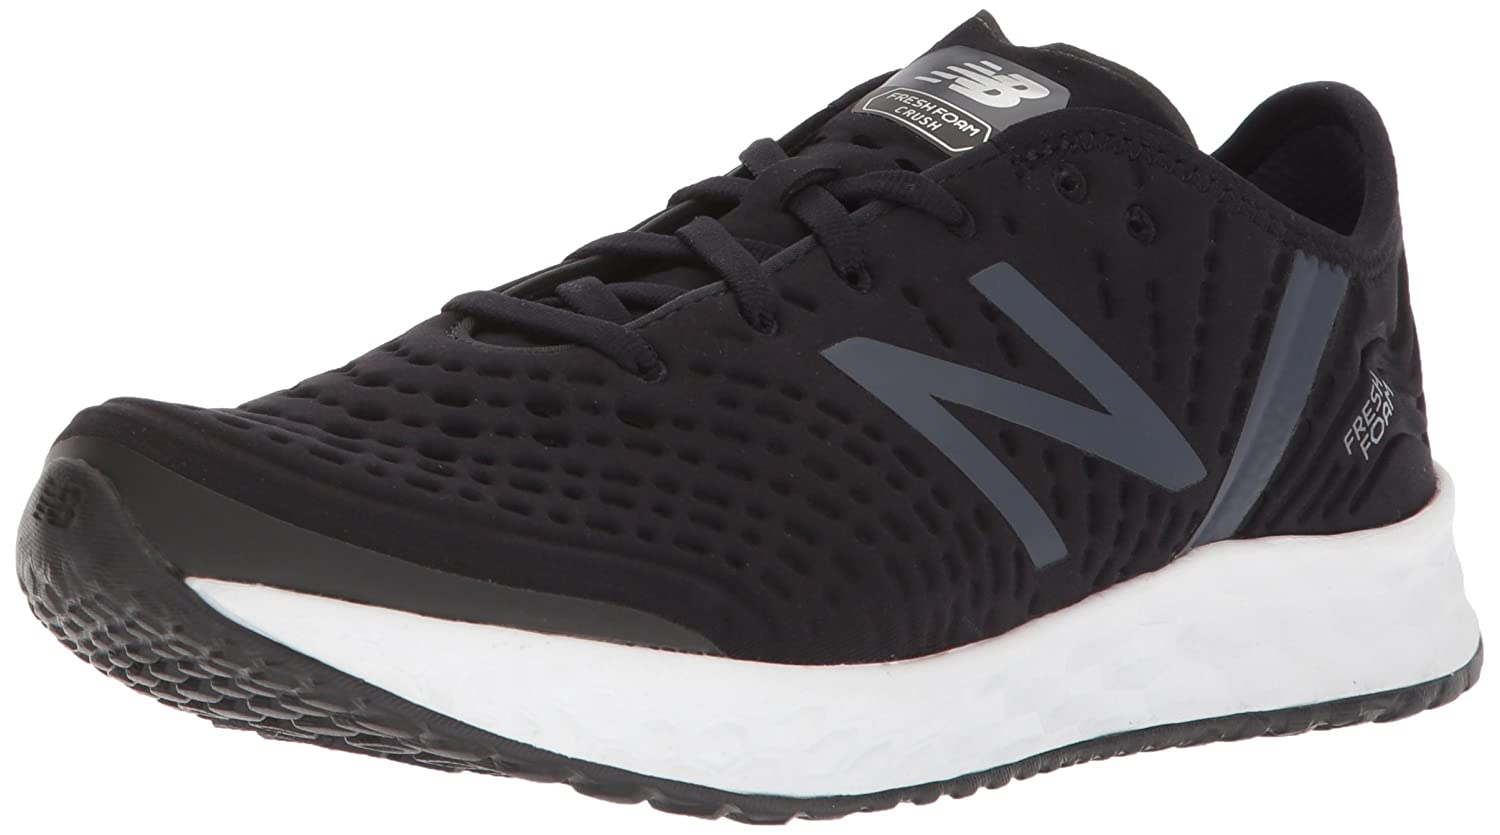 New Balance Women's Fresh Foam Crush V1 Cross Trainer B06XS8YGGK 5.5 B(M) US|Black